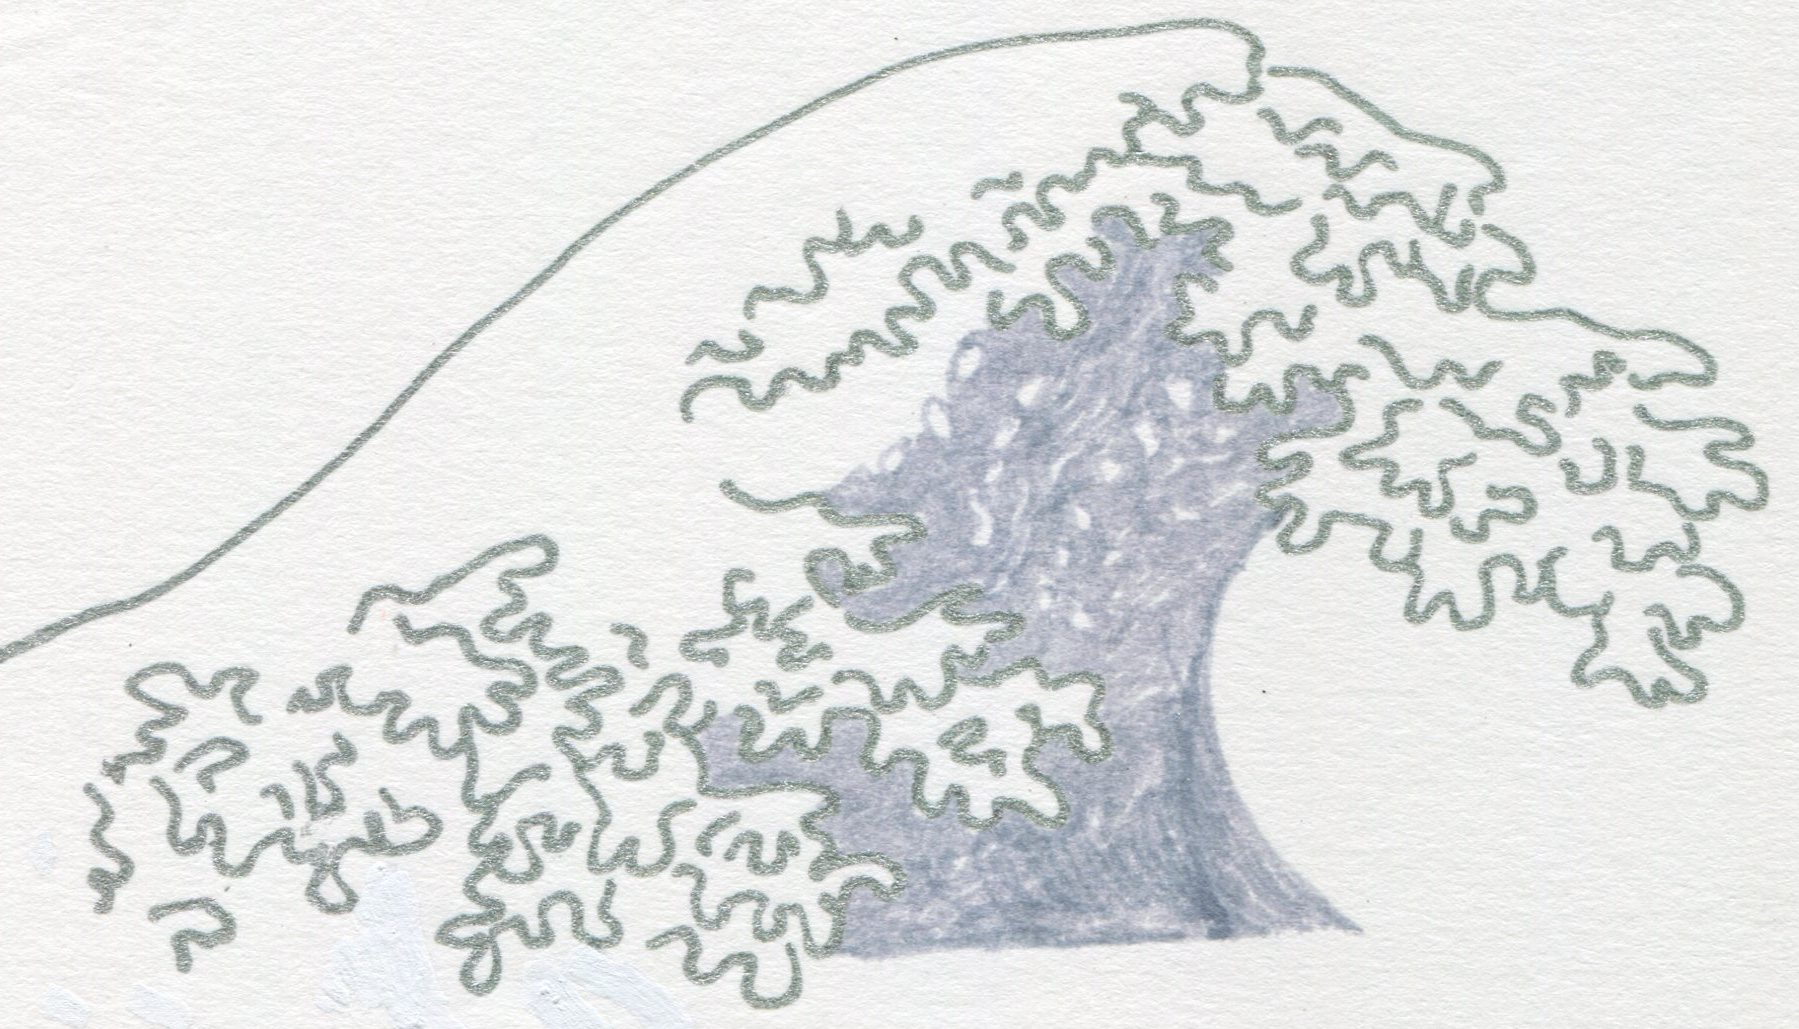 I was helping a client self-publish her book, and more than halfway through she had the idea to include illustrations opposite a spate of quotations, on what otherwise would have been blank pages. Since the title of her book was The Wave and the Drop, the motif was a no-brainer. Given the book's subject — stories of the afterlife in different traditions to help ease a dying person's transition — I wanted to make the drawings both strong and delicate. I bought some lovely silver-colored gel pens in different shades, and this drawing (one of 13 I ended up doing) is in keeping with the spirit of the book. -